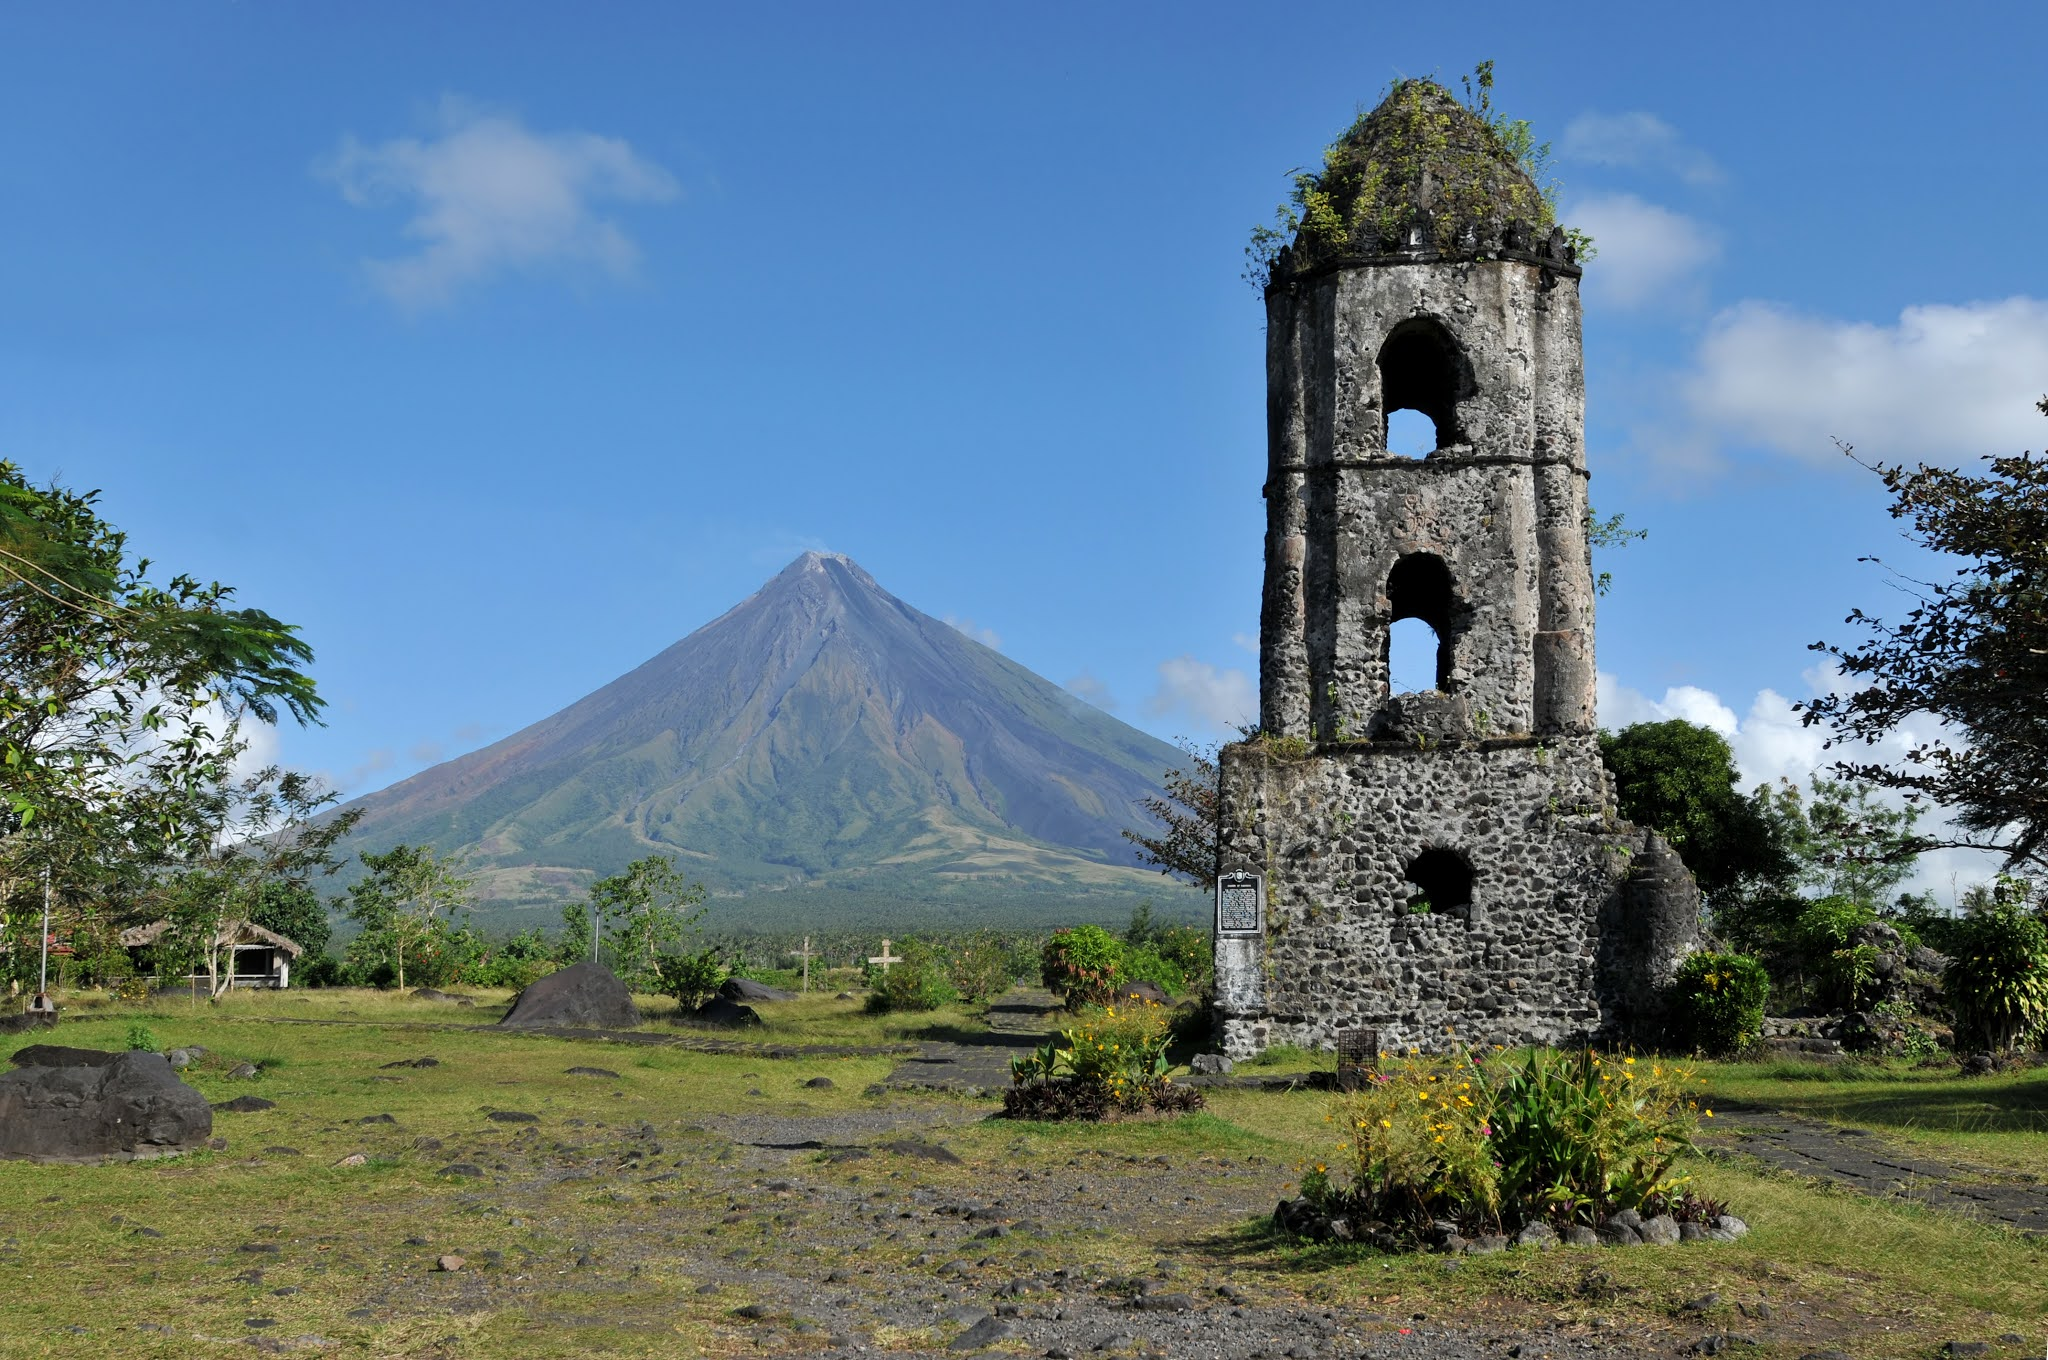 A beautiful view of the Mayon Volcano in Bicol